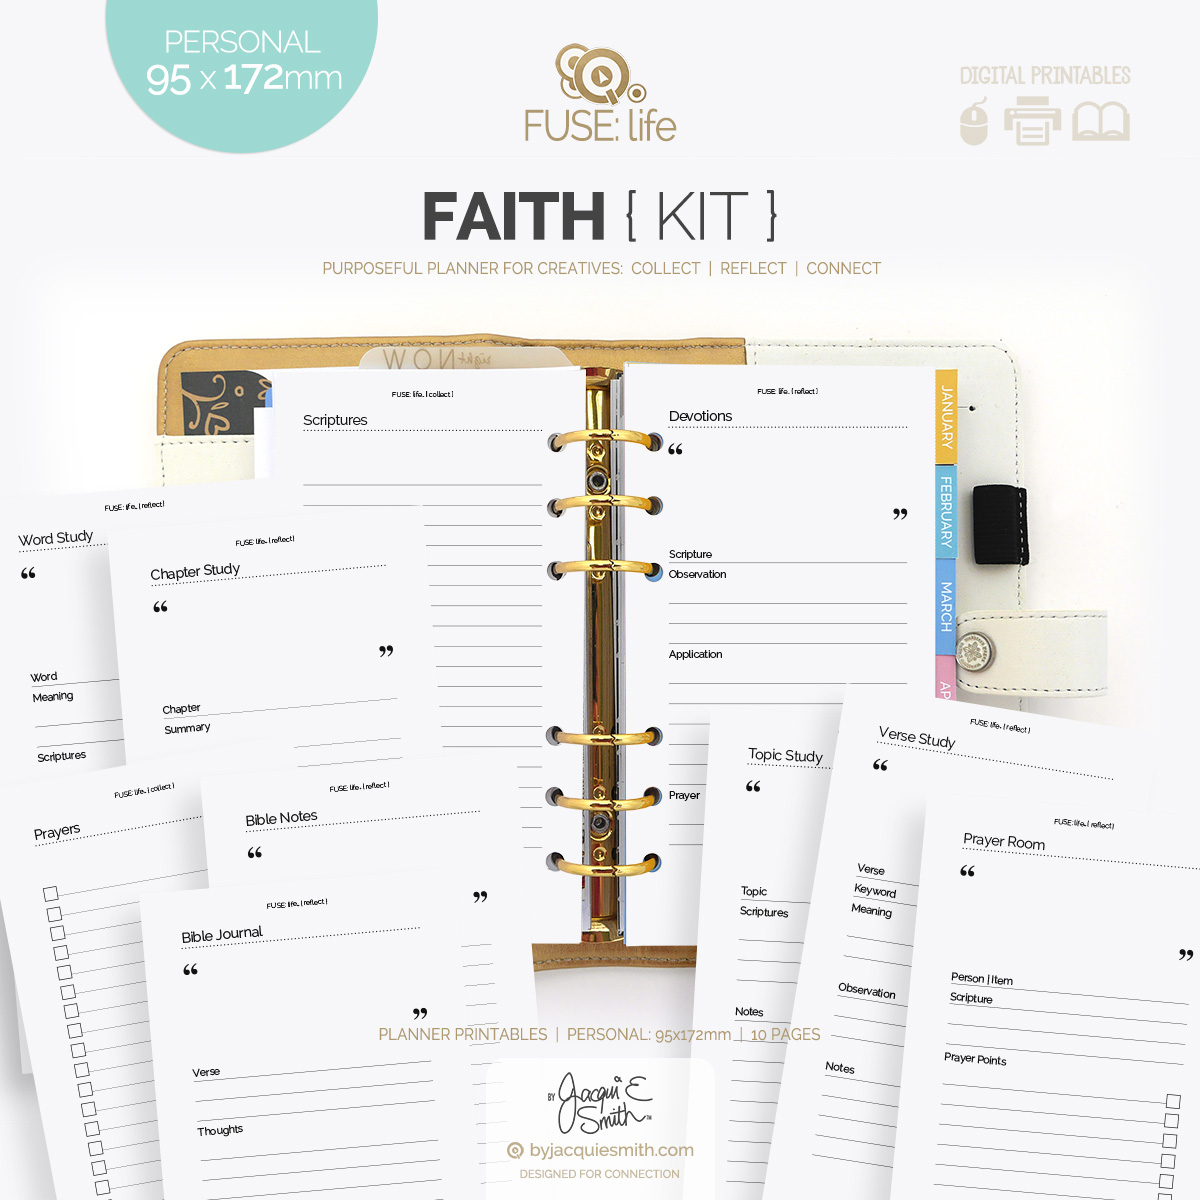 FUSE:life Faith Kit planner printables in three popular sizes at byjacquiesmith.com